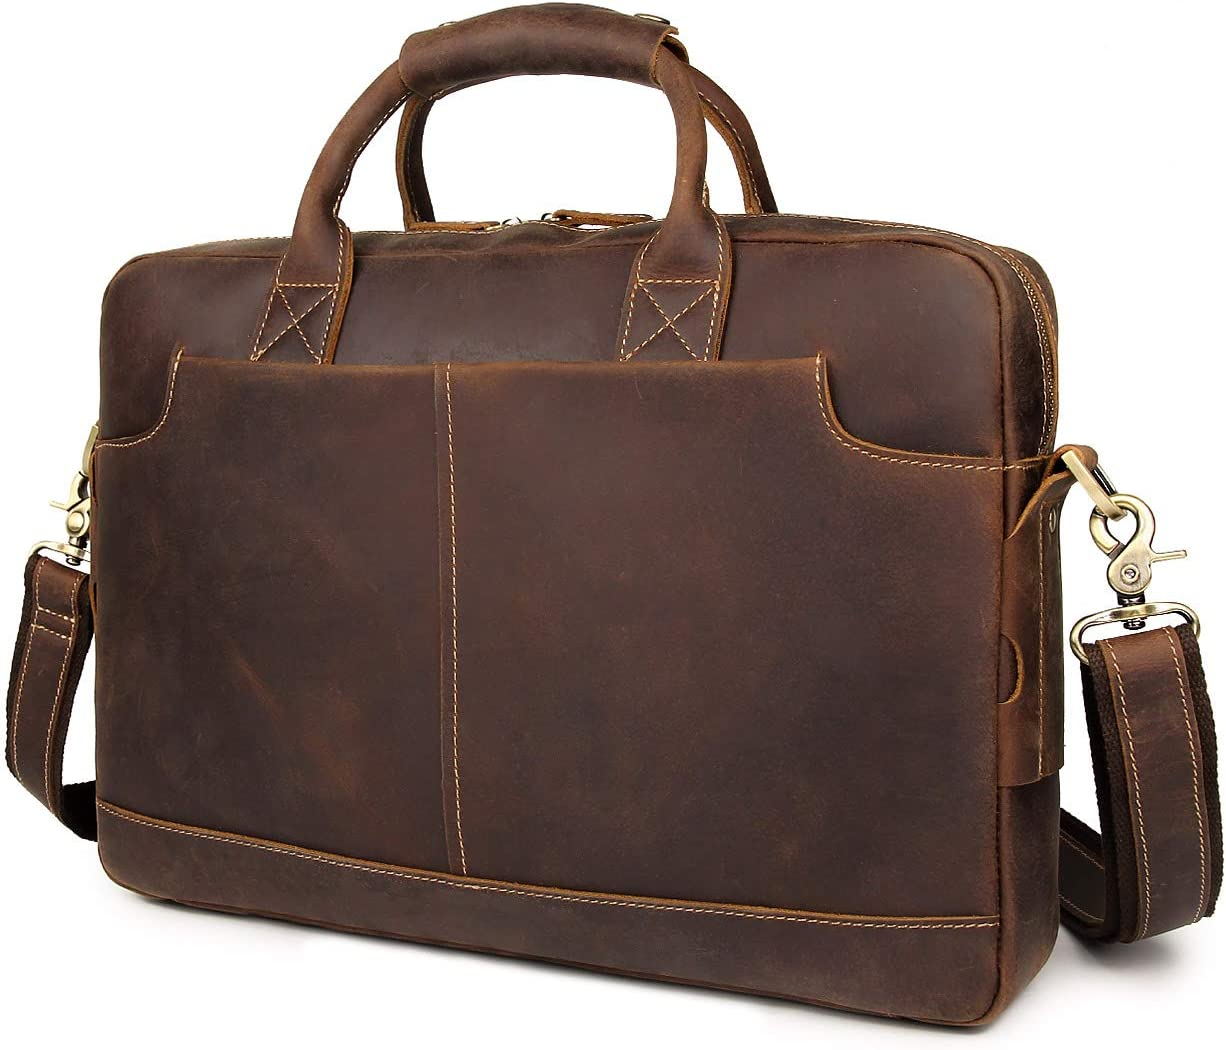 "Augus Leather 16"" Laptop Briefcase for Men Shoulder BagTravel Messenger Duffle Bags handbag With YKK Metal Zipper"